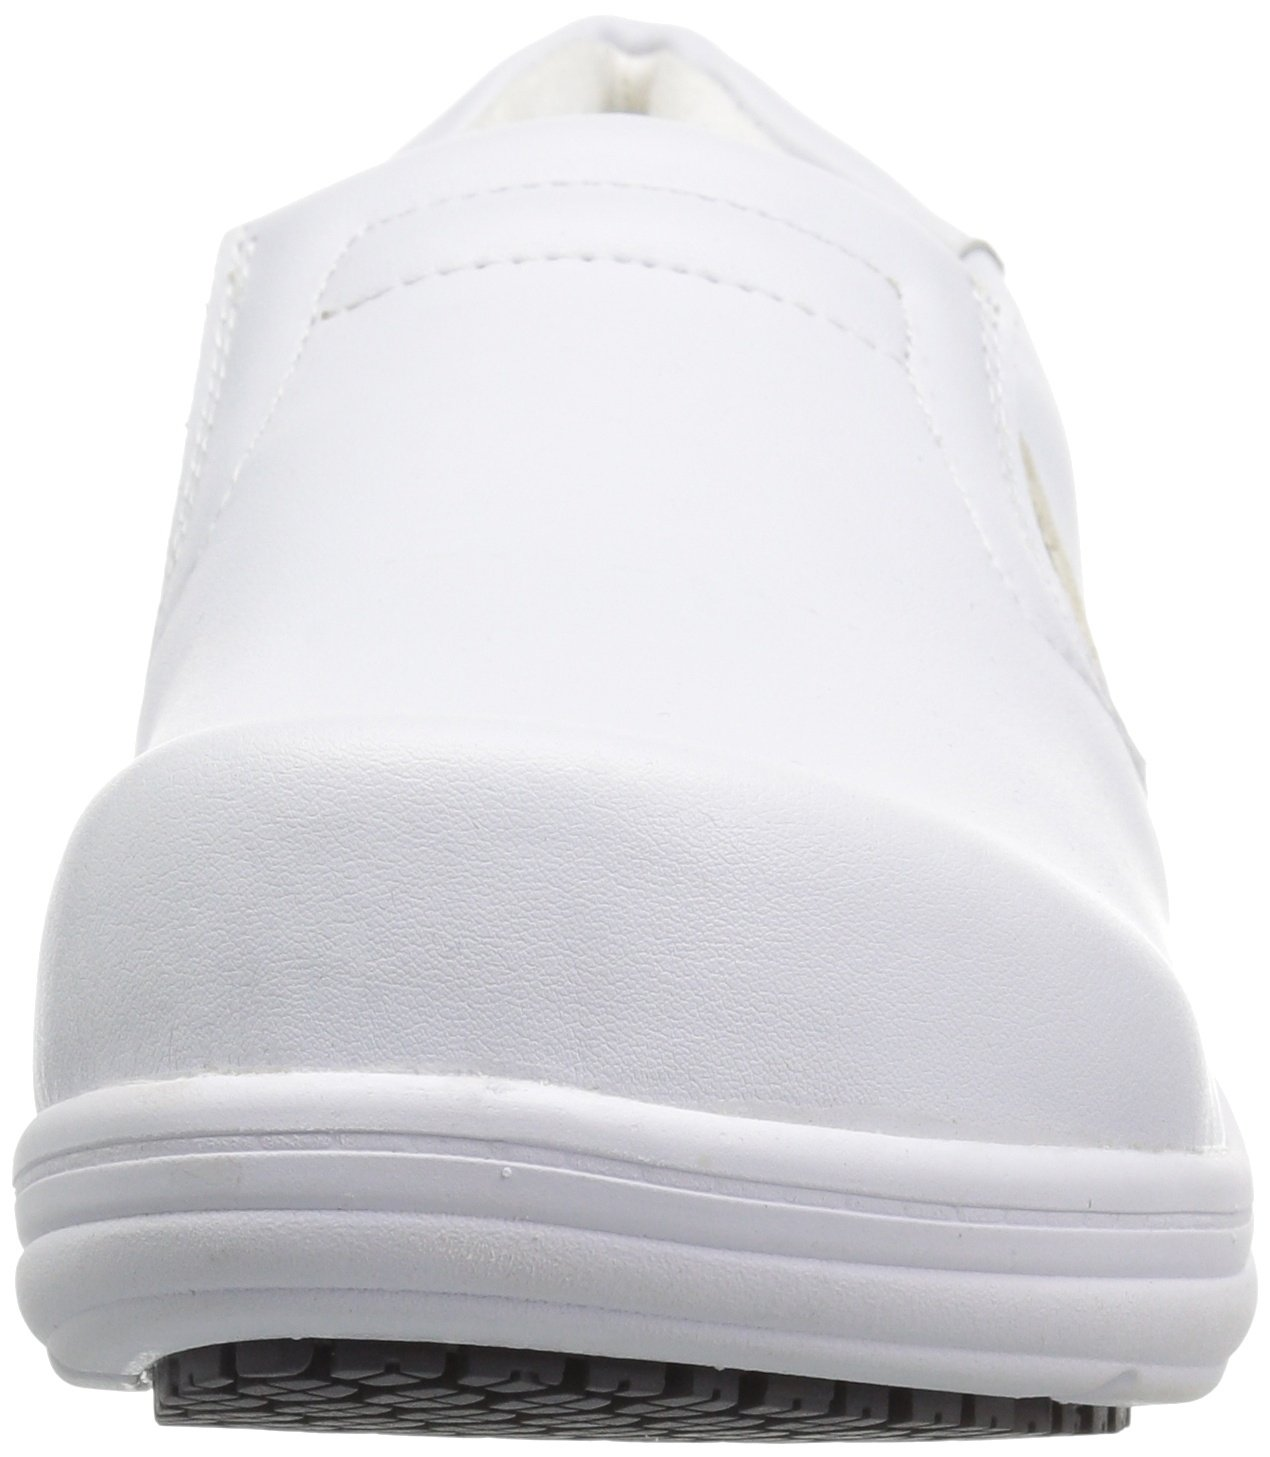 Easy Works Women's Bind Health Care Professional Shoe, White, 8.5 M US by Easy Works (Image #4)